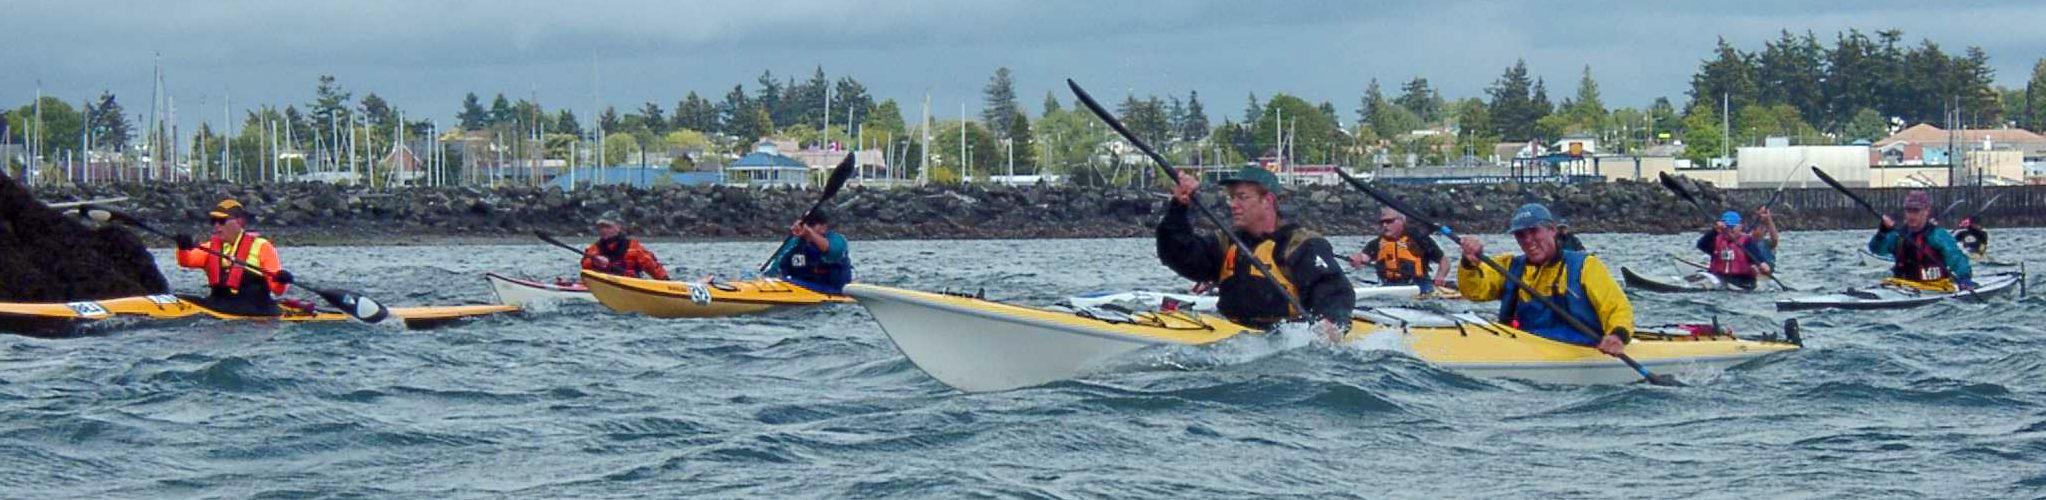 Two men in a double kayak strain to push ahead of the pack